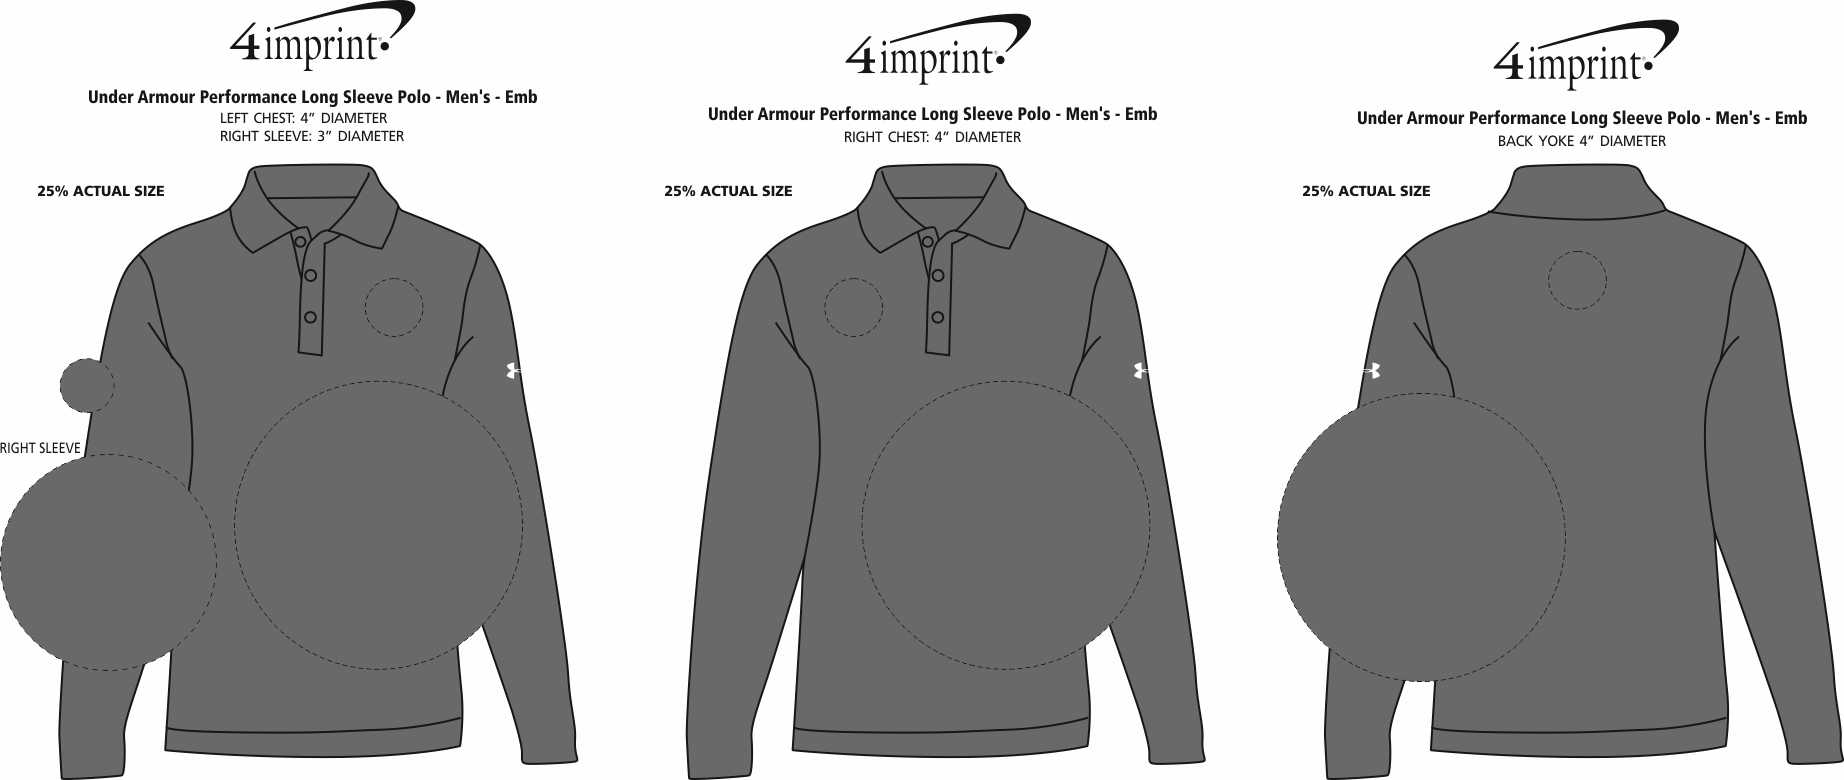 571d58b655e ... Under Armour Performance Long Sleeve Polo - Men s -. 360° view · View  Imprint